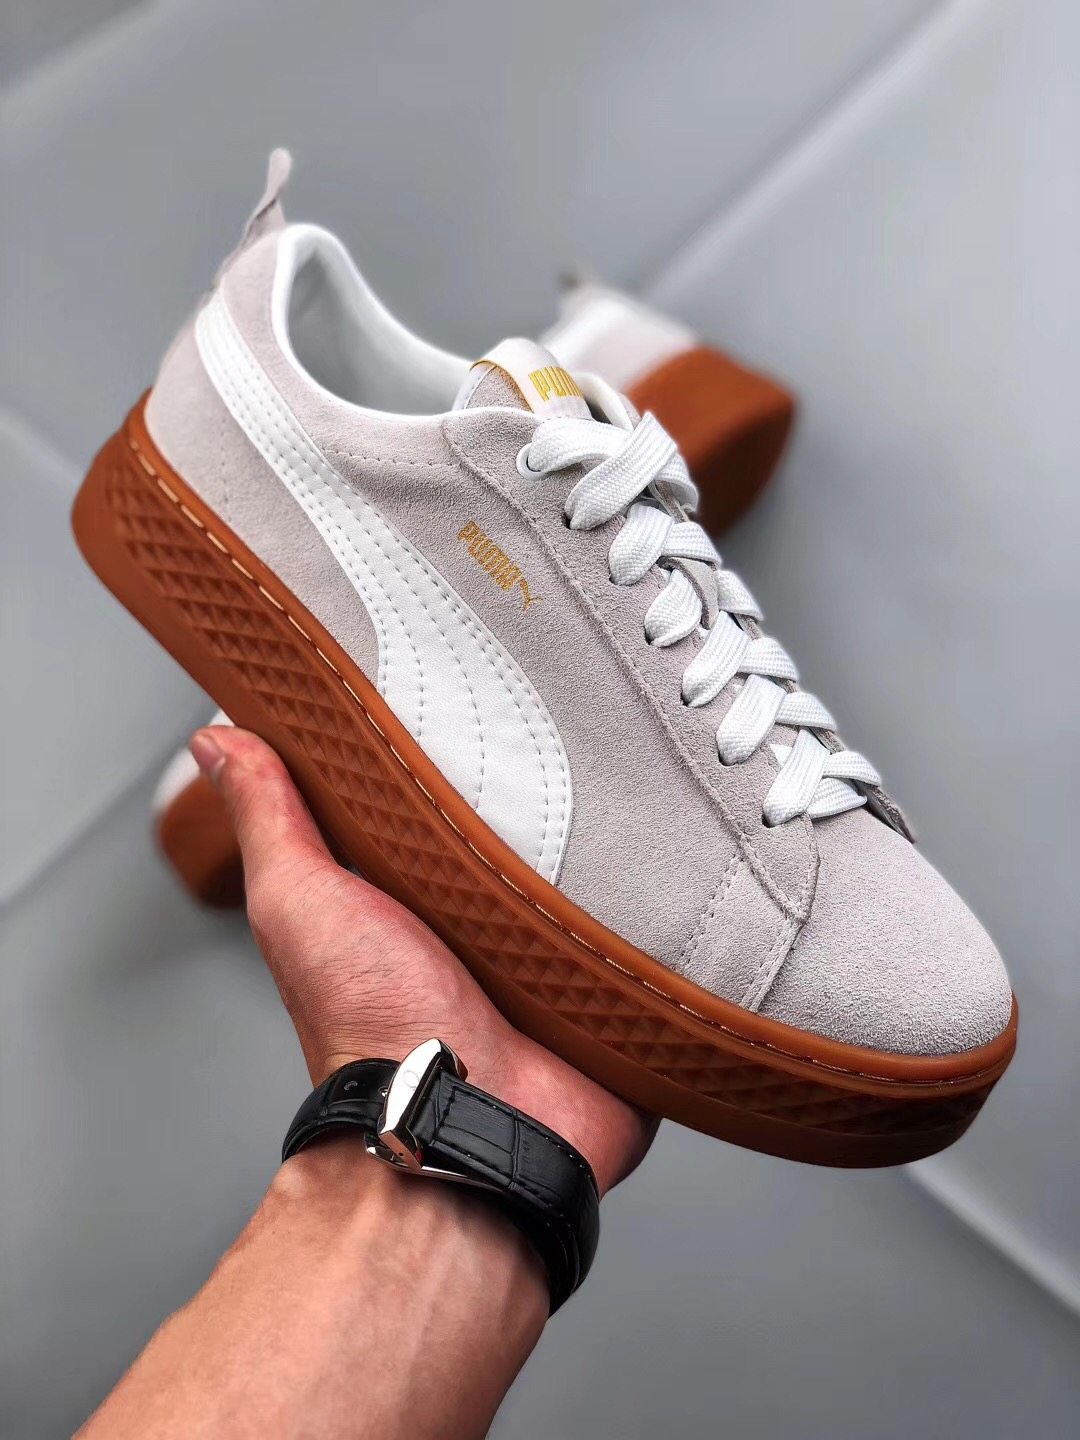 86e336d06105cb 2018 PUMA sports shoes women Suede Cleated Creeper First Generation Rihanna  sneakers fenty cougar shoes woman tenis Shoes-in Badminton Shoes from Sports  ...